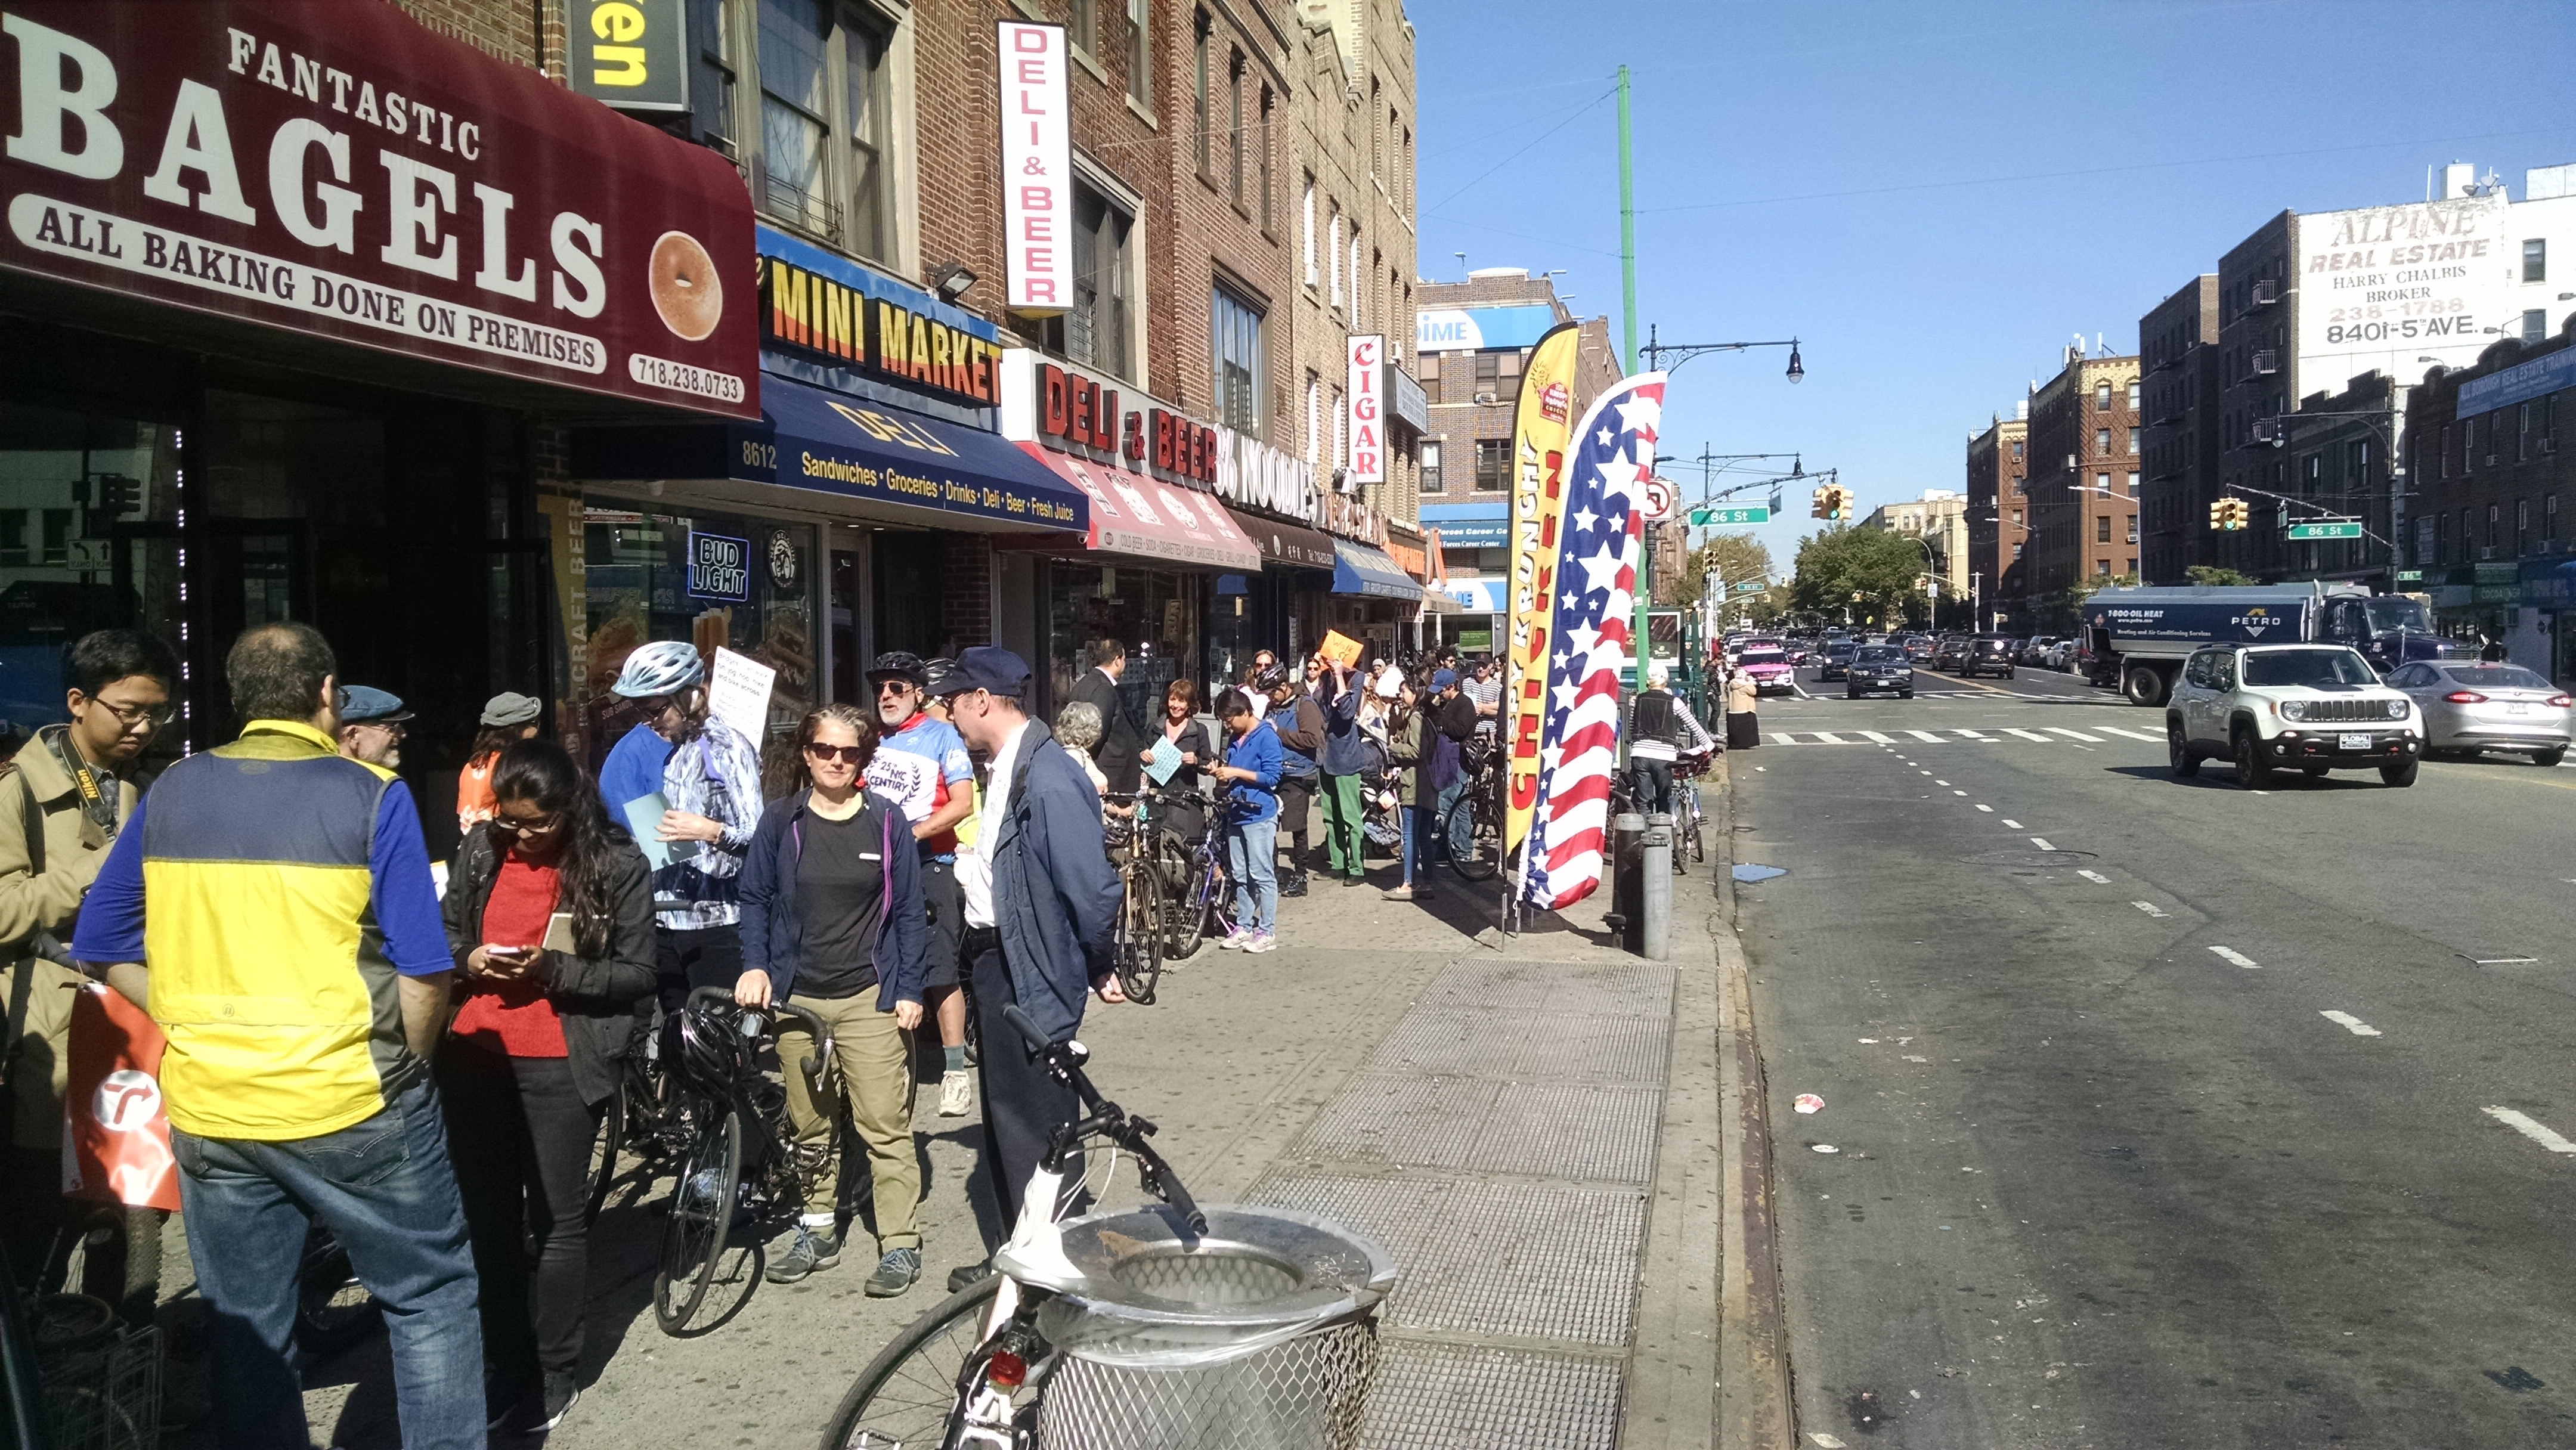 Proponents of a Verrazano Bridge biking and walking paths line up to put their bikes on MTA buses, which only hold two bikes at a time. at 4th Avenue and 86th Street in Bay Ridge on Saturday to put their bikes on bus racks (two per bus).